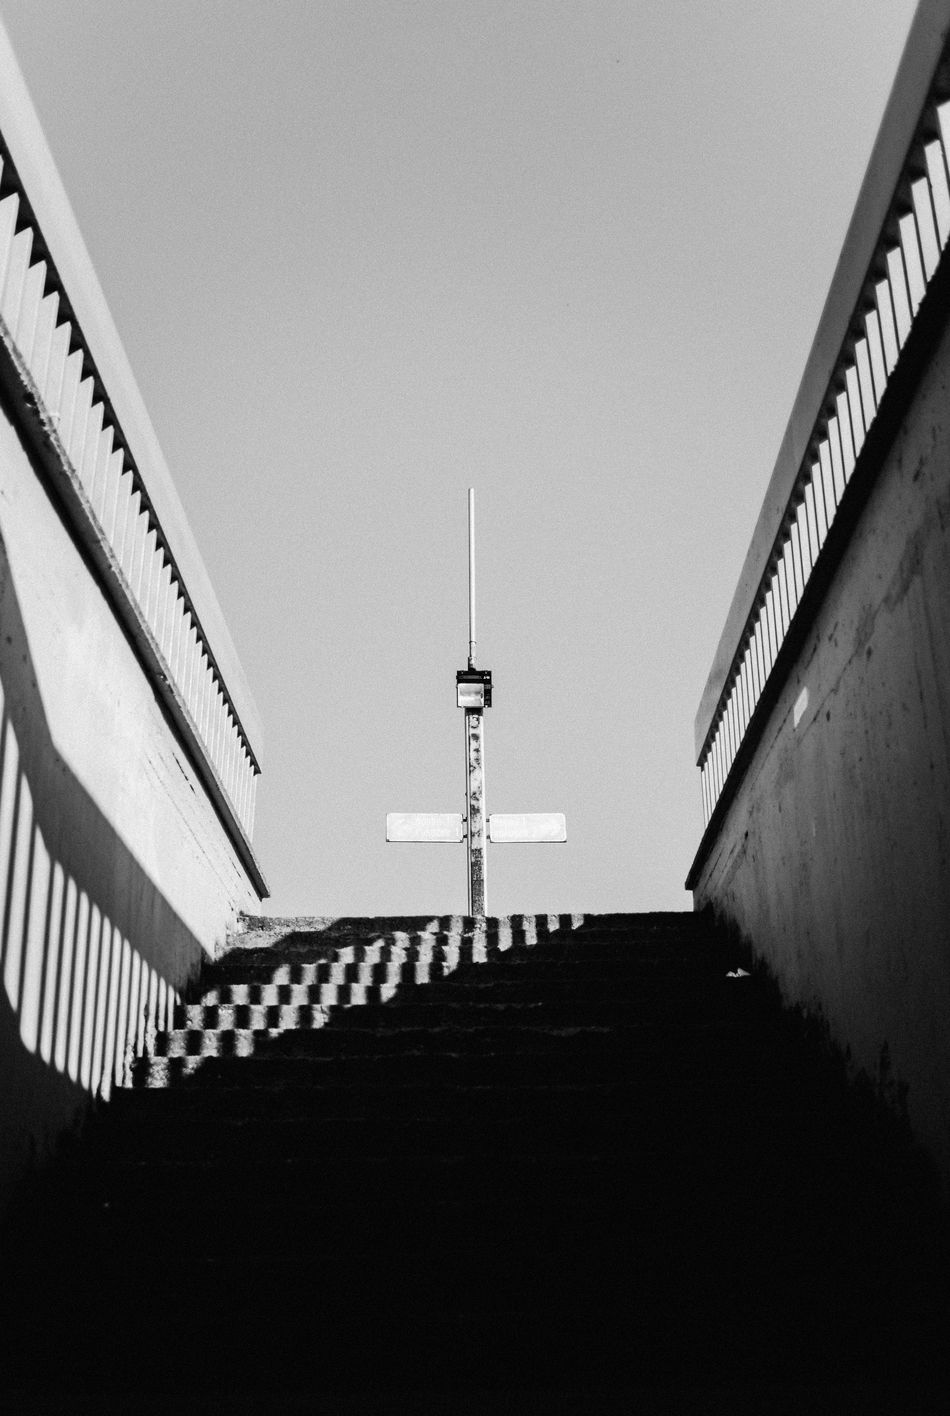 /// Architecture Building Exterior Built Structure City Day Eye4photography  EyeEm Best Shots EyeEm Gallery EyeEm Nature Lover EyeEmBestPics Light And Shadow No People Outdoors Shadow Shootermag Sky Stairs Travel Destinations Welcome To Black